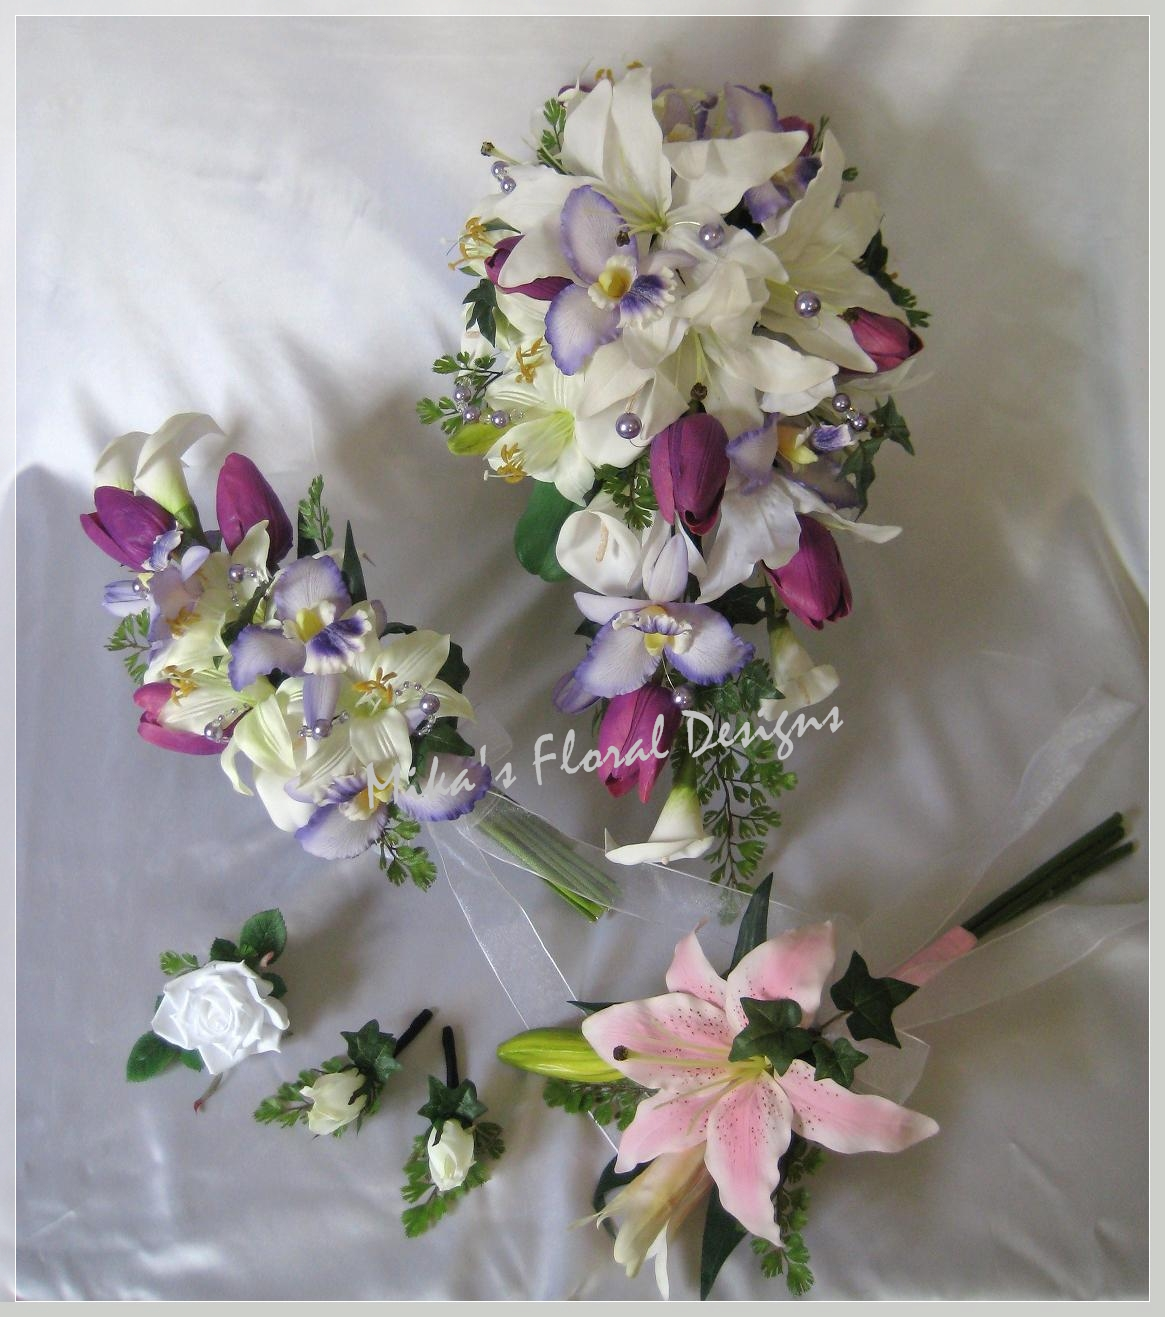 Wedding Flower Arrangements With Lilies : Calla lily flower arrangements for weddings rose pictures